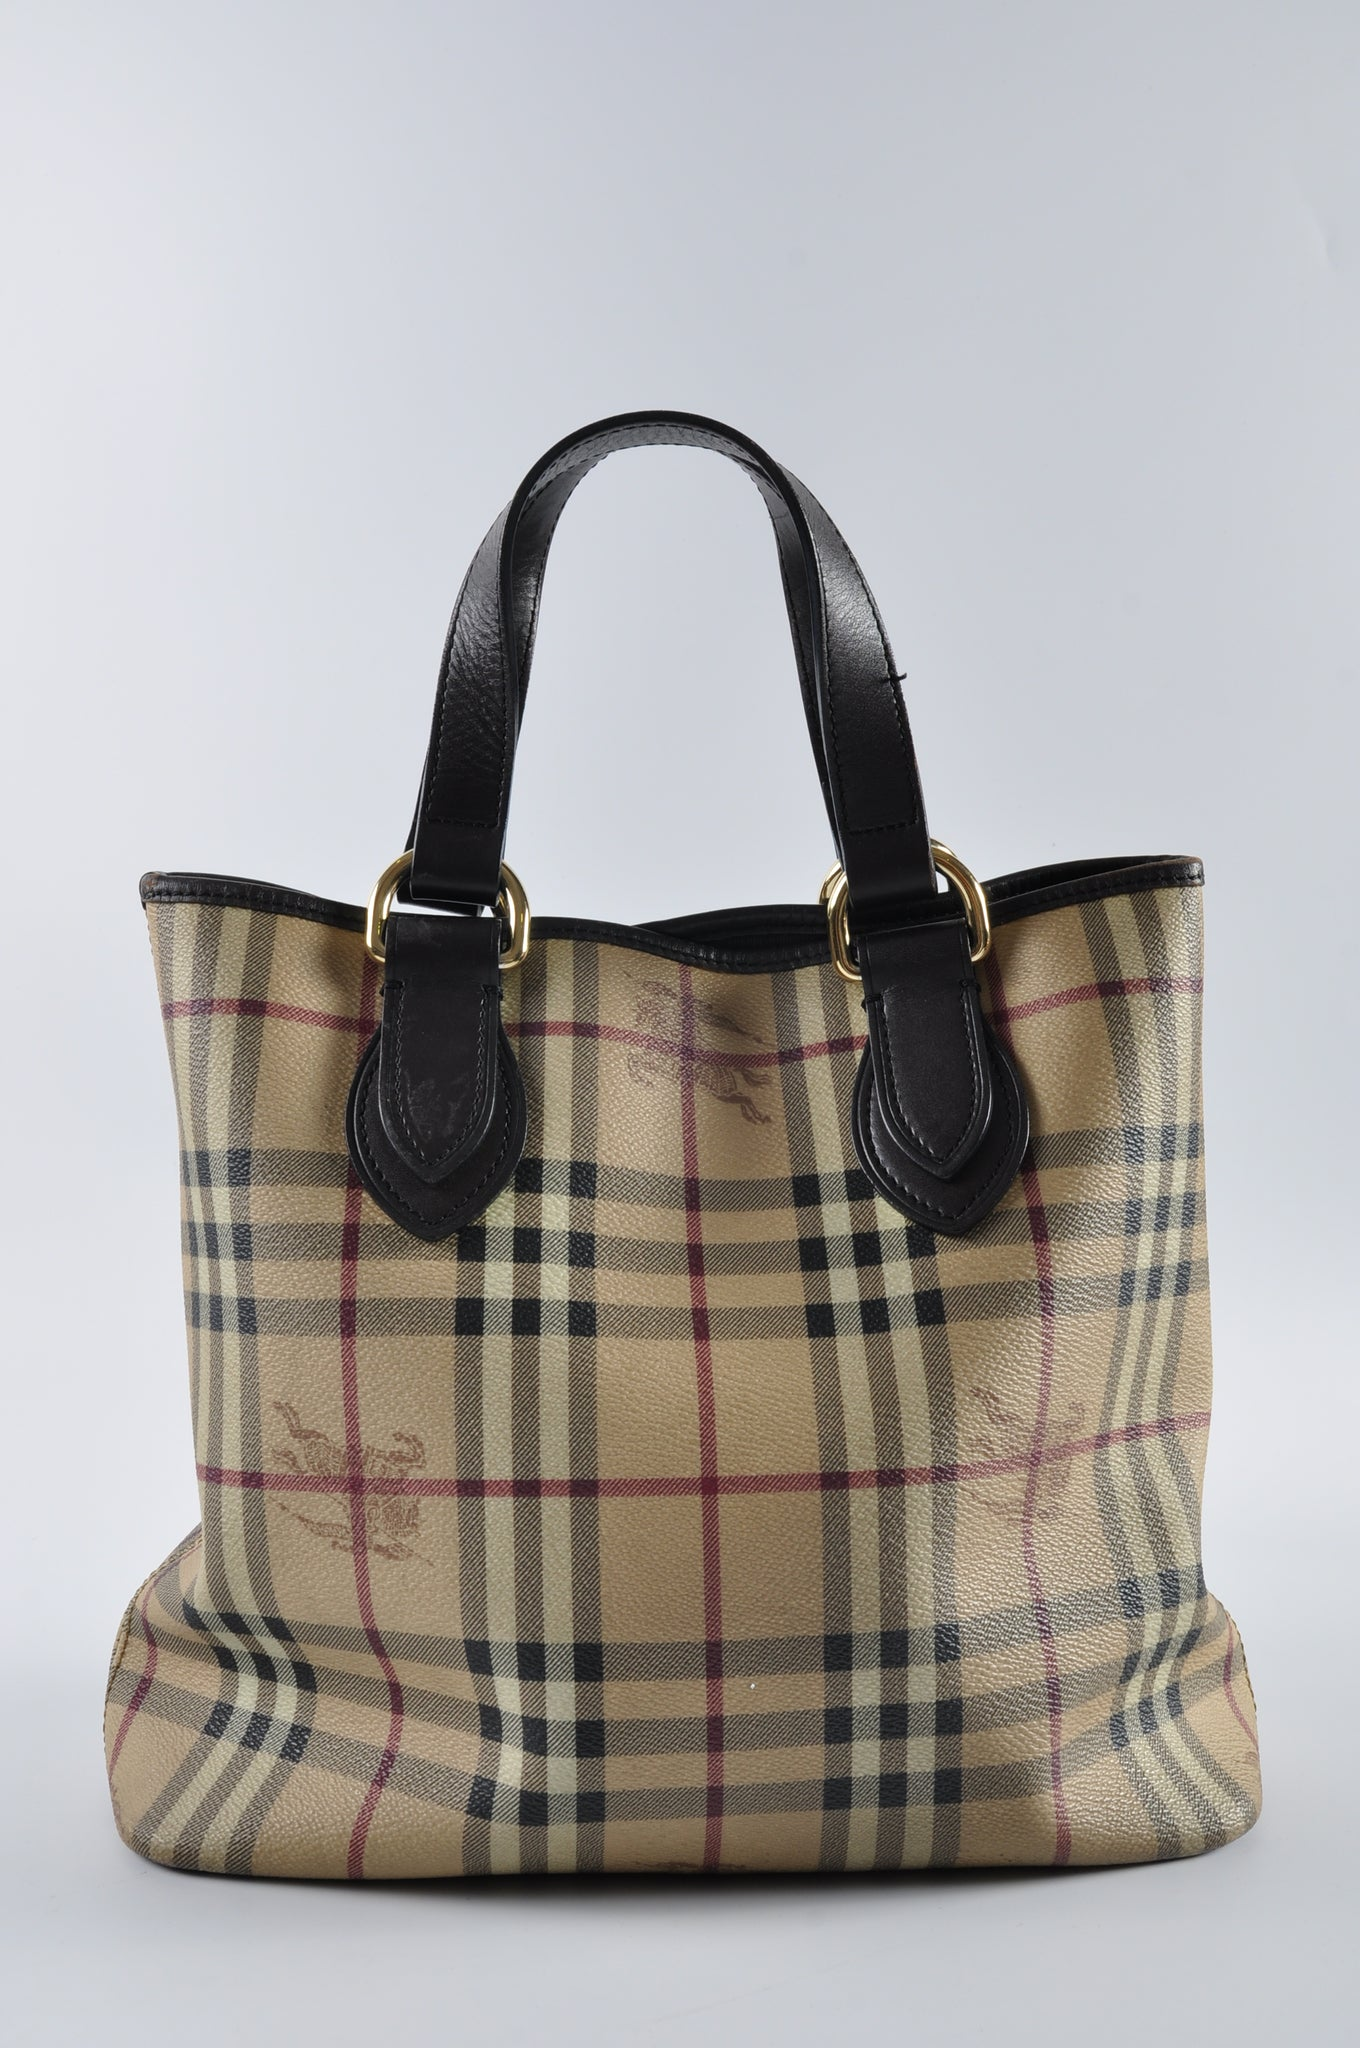 Burberry Haymarket Tote - Glampot